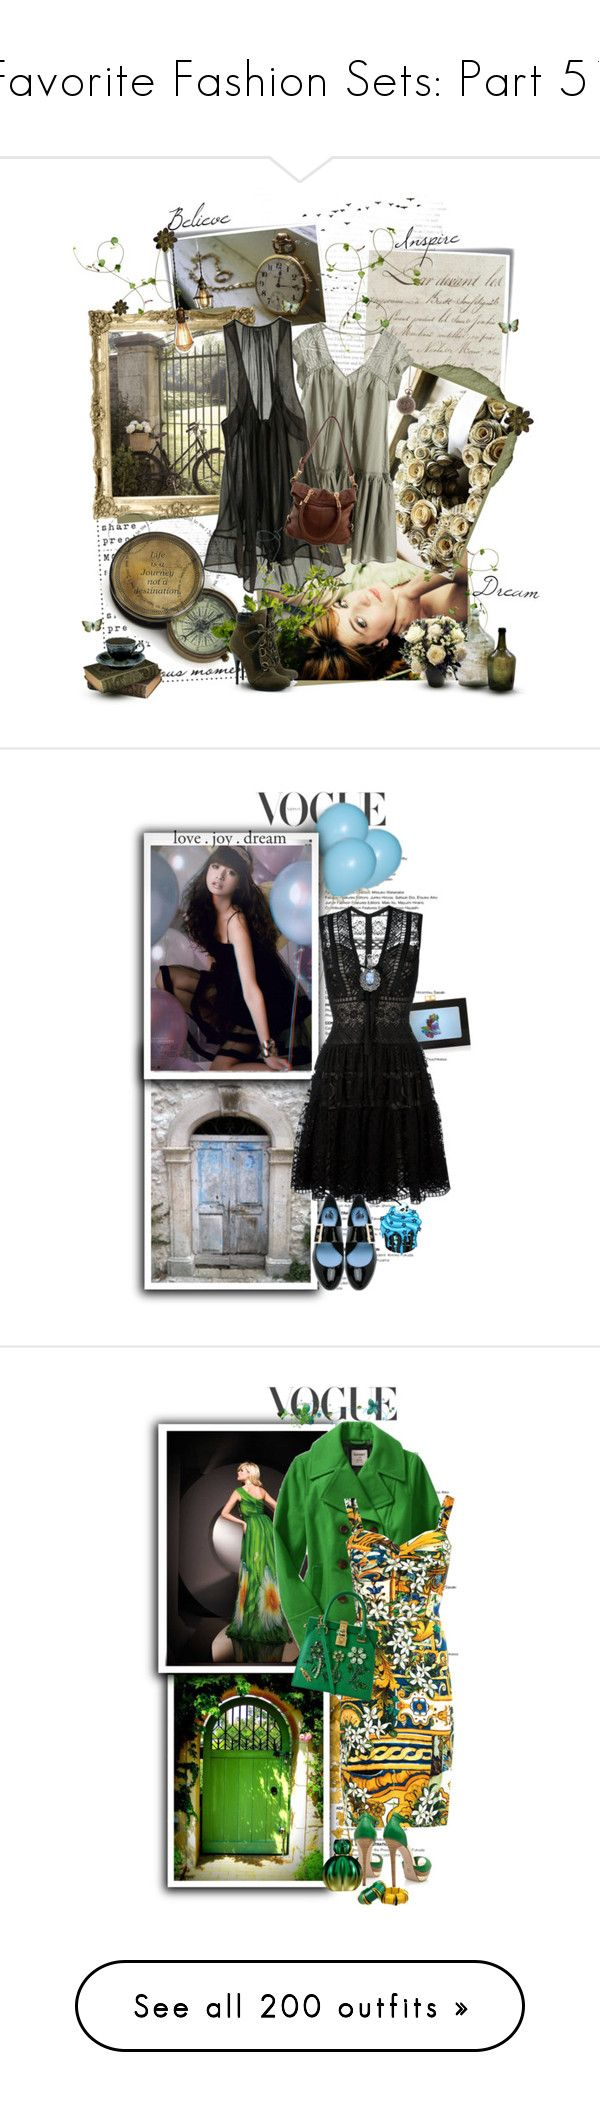 """""""Favorite Fashion Sets: Part 51"""" by majezy ❤ liked on Polyvore featuring Post-It, Pieces, INC International Concepts, PATH, Maje, By Malene Birger, Giuseppe Zanotti, giuseppe zanotti, compass and lace up suede bootie"""